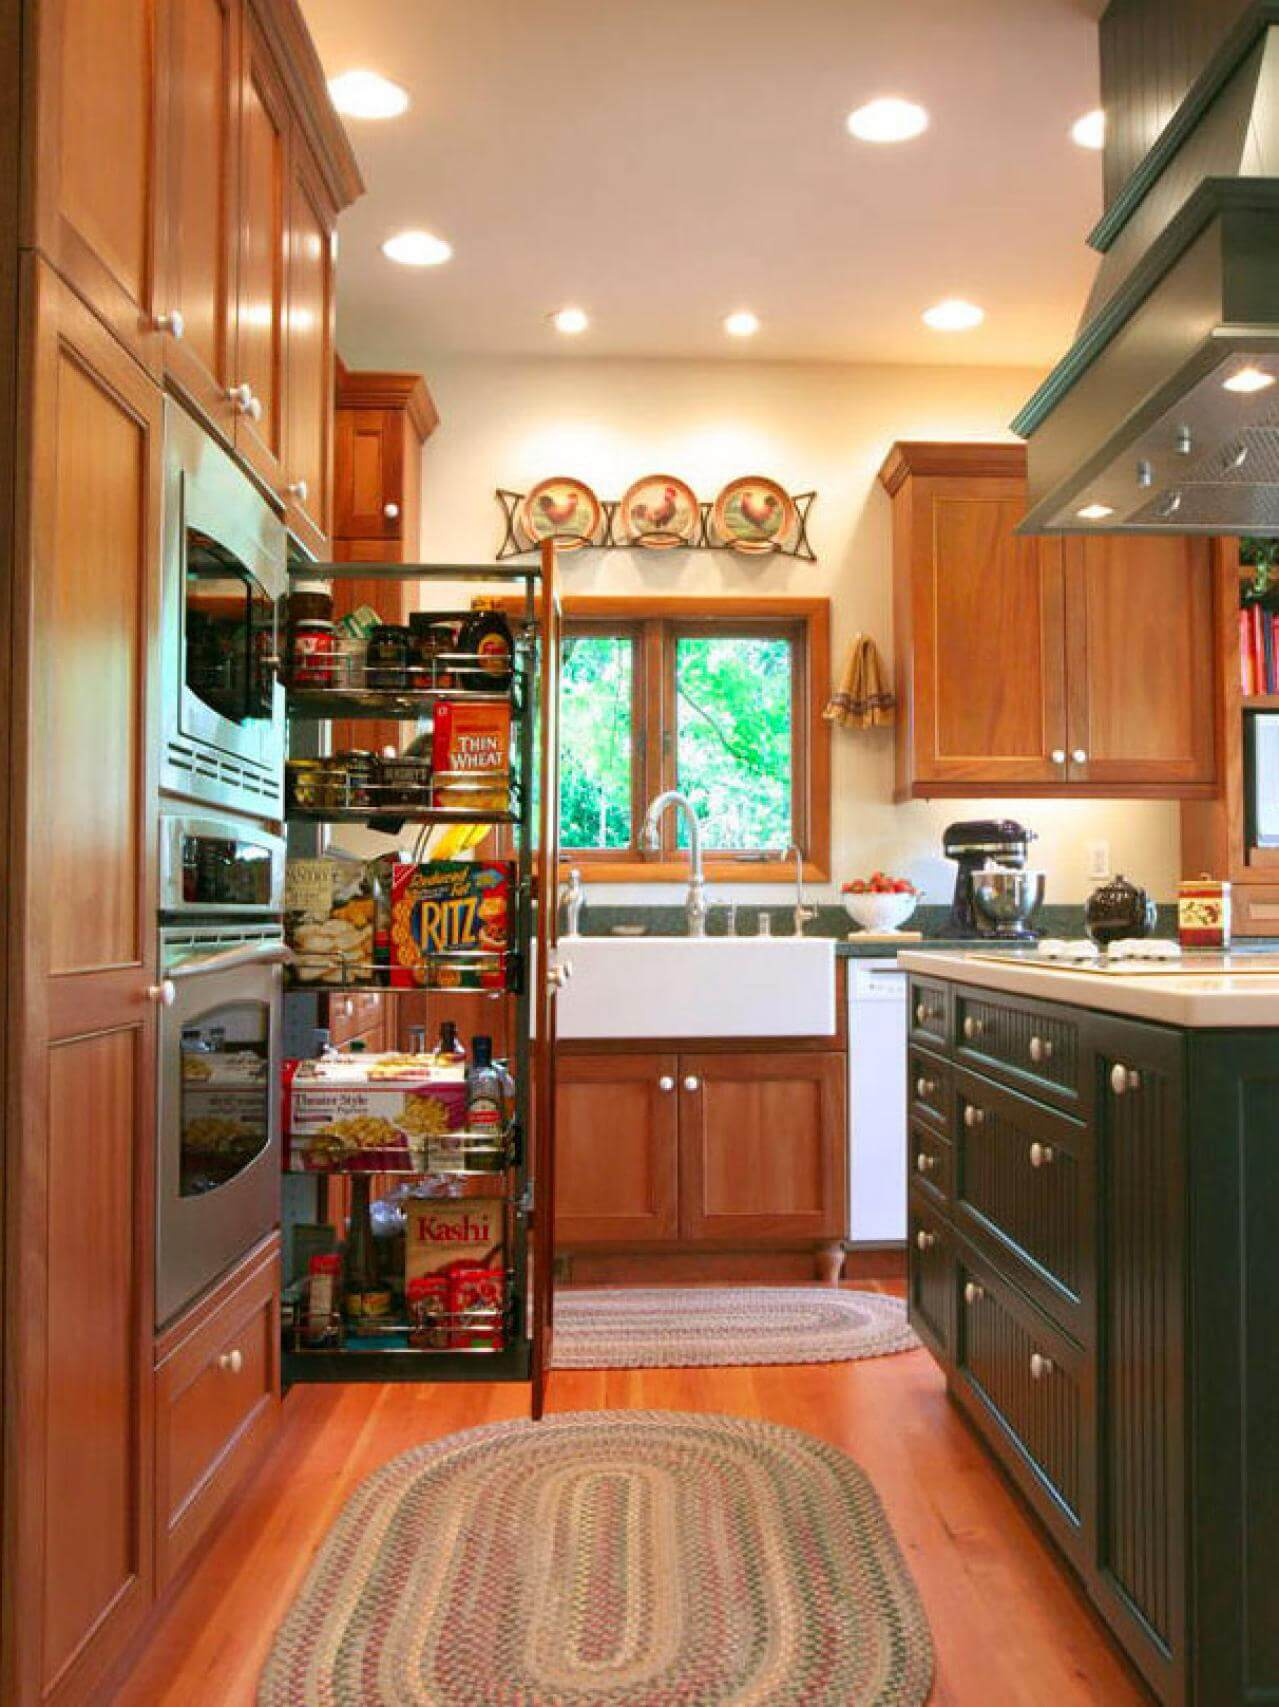 ORIGINAL COUNTRY KITCHEN CABINET PULL OUT PANTRY